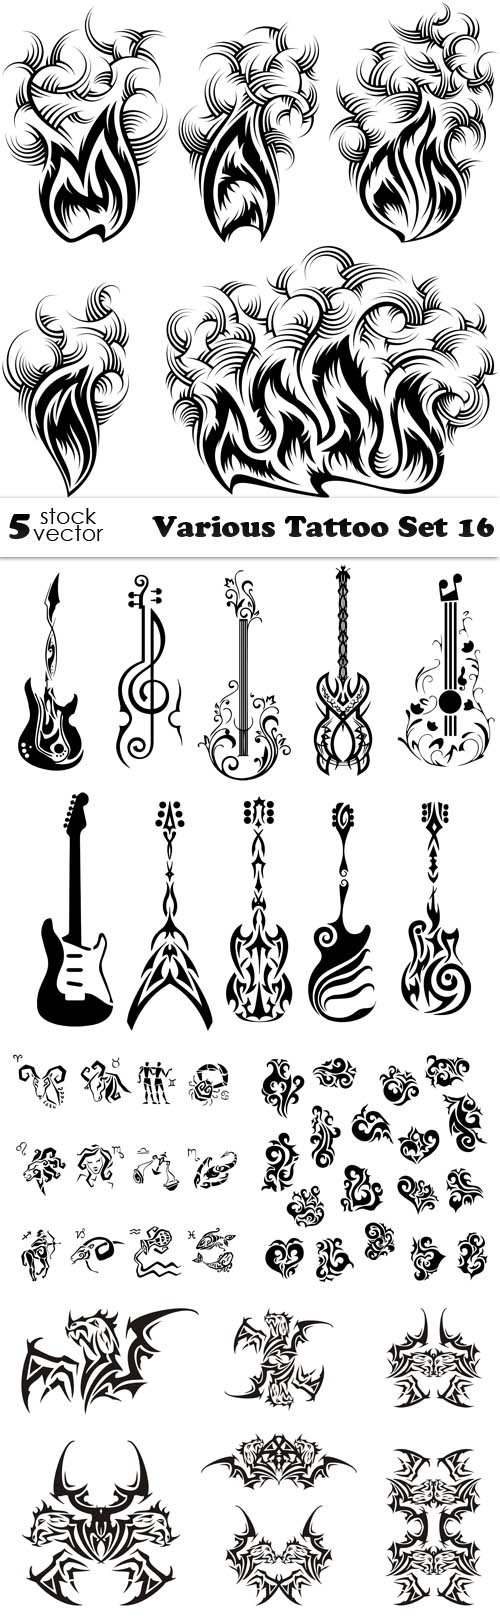 Vectors - Various Tattoo Set 16